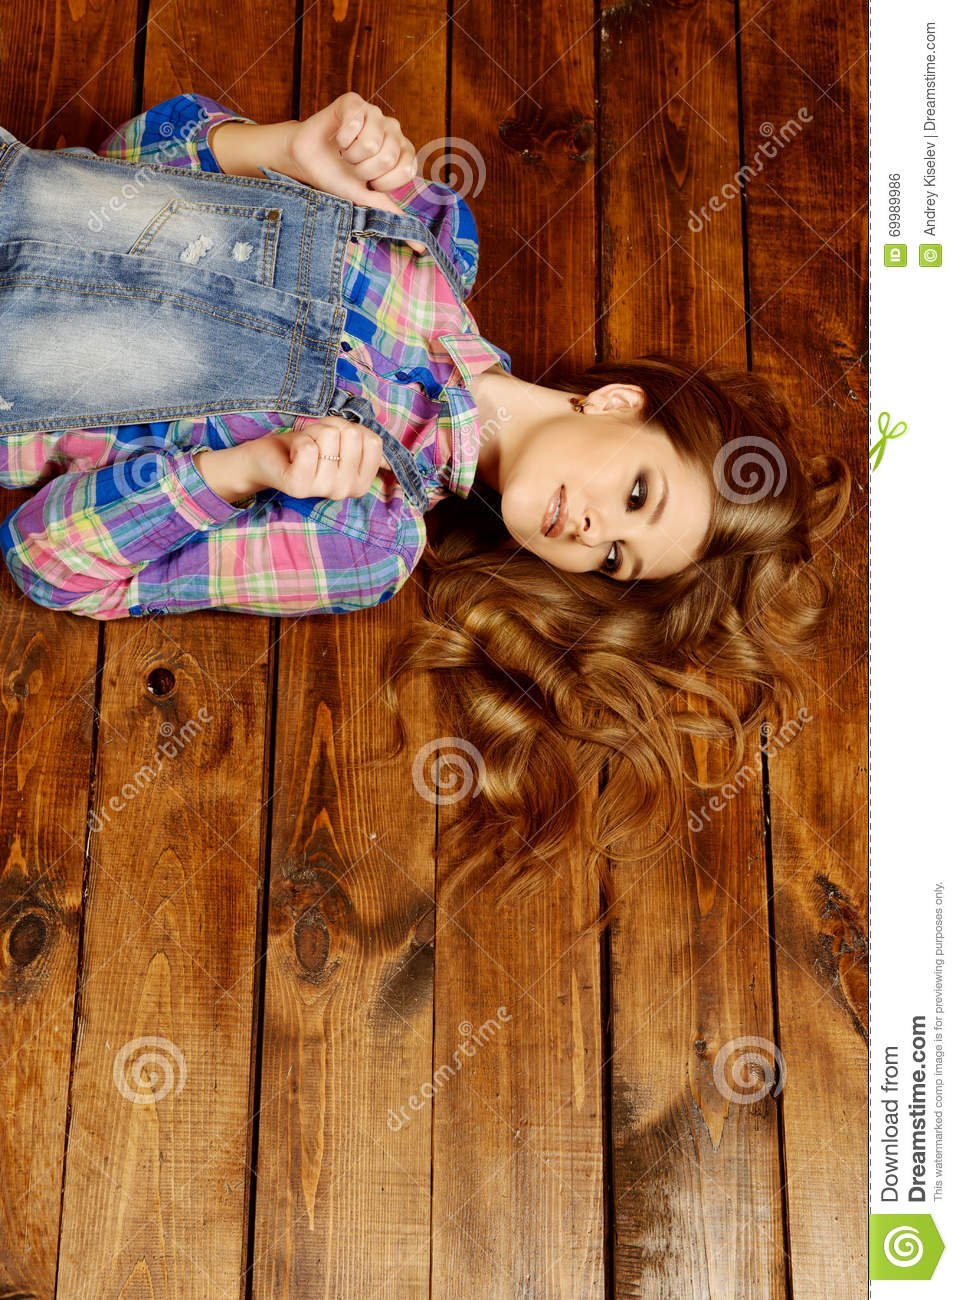 Youth jeans style stock photo  Image of portrait, female - 69989986